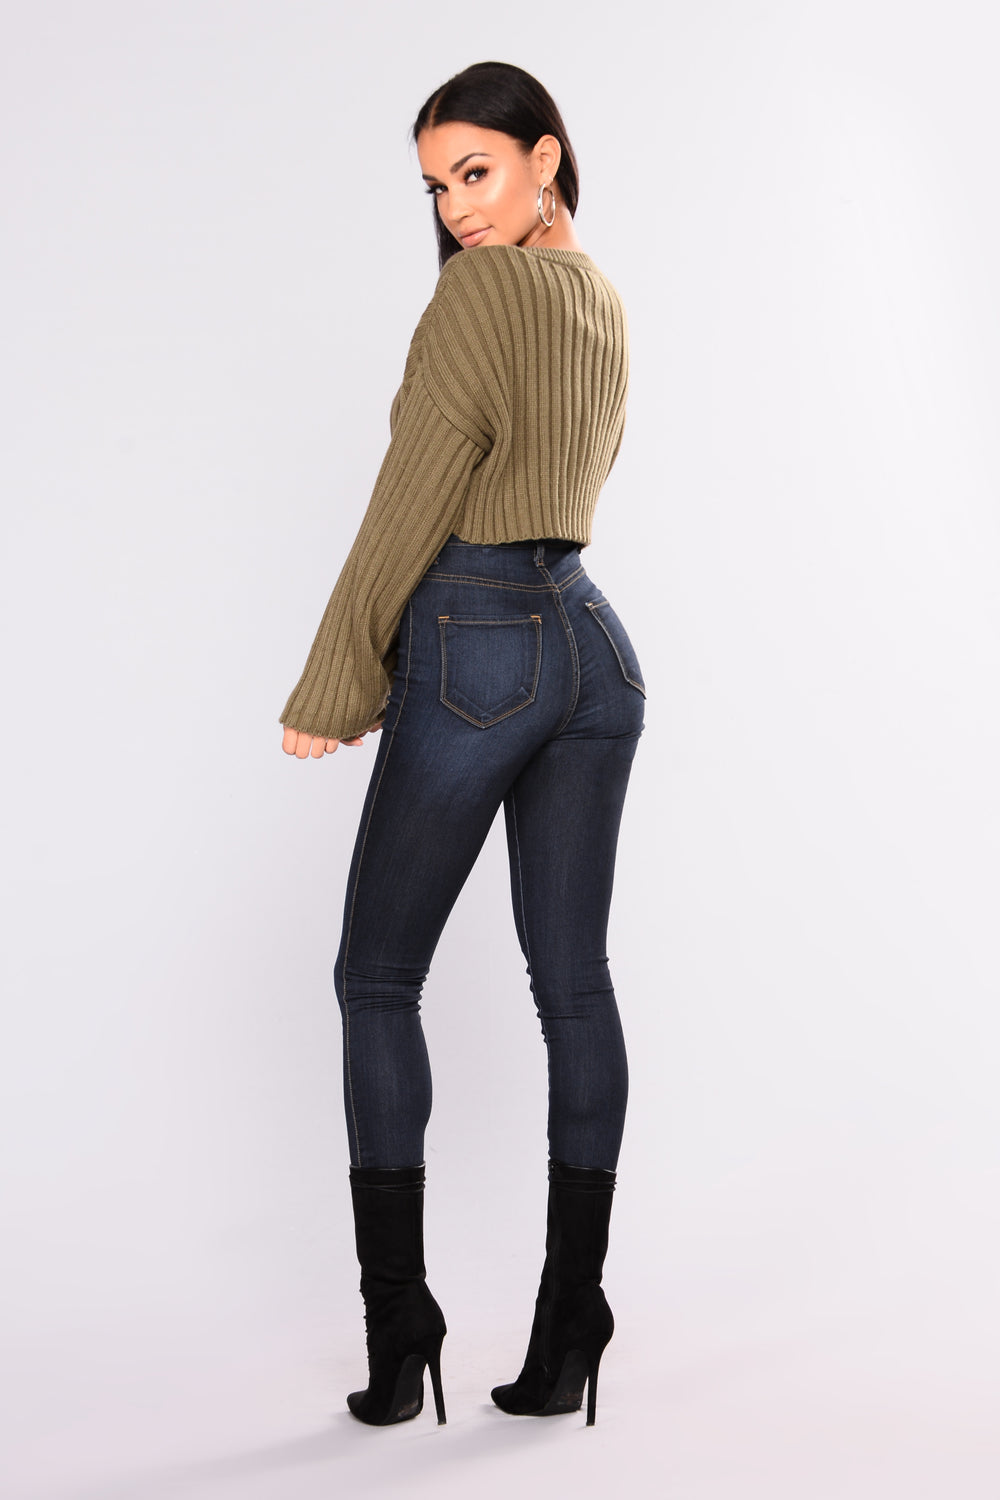 Bessie Ribbed Sweater - Olive